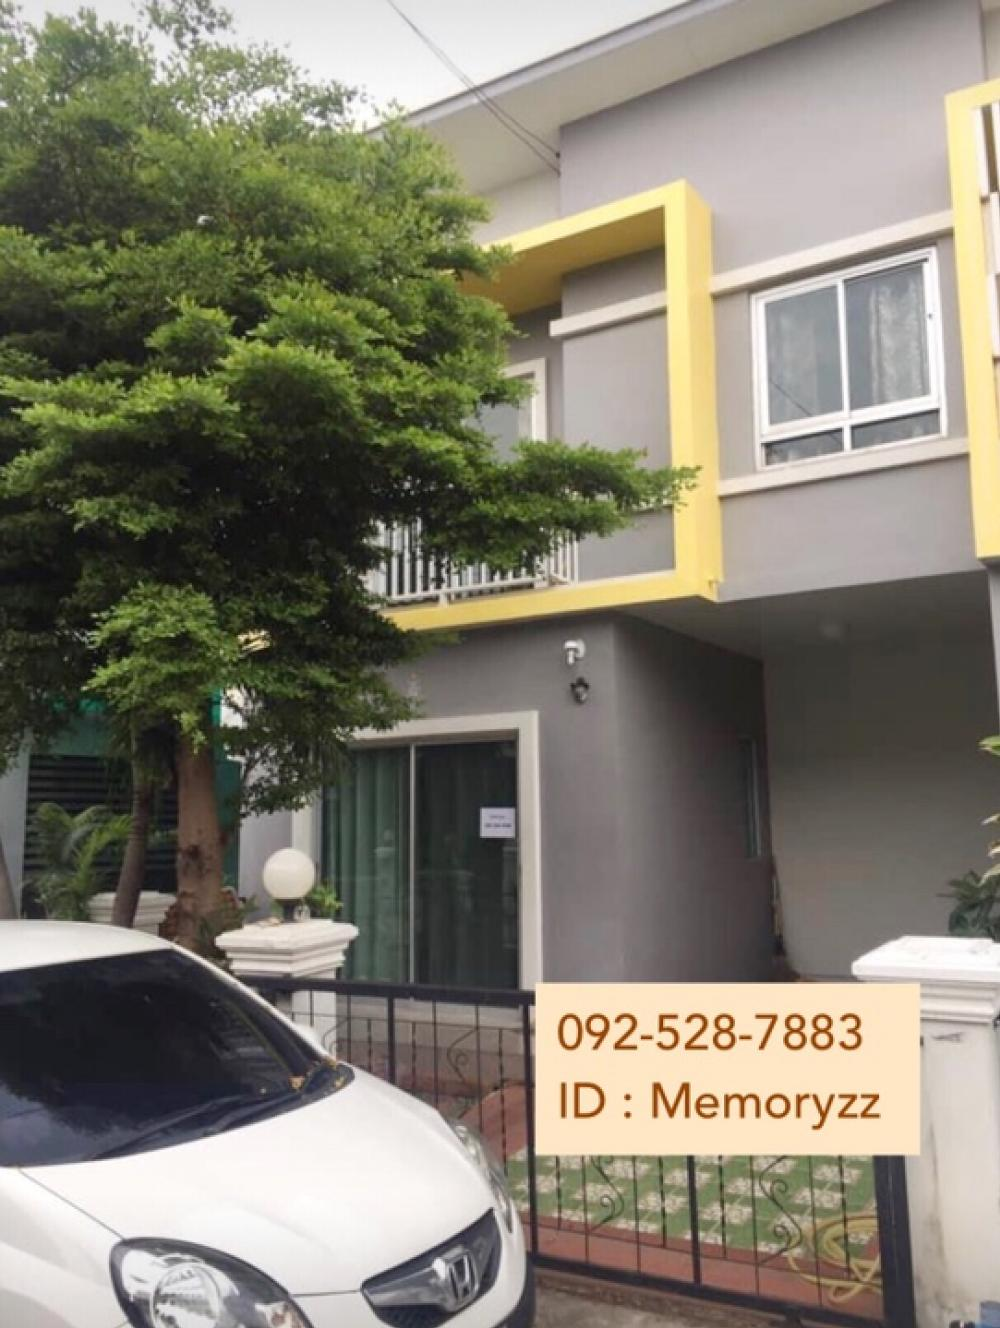 For RentTownhouseLadkrabang, Suwannaphum Airport : Townhome for rent behind the rim Eternal Ville 10, near Hua Chiew University, 3 bedrooms, 2 bathrooms, appliances, ready, 12,000 / month